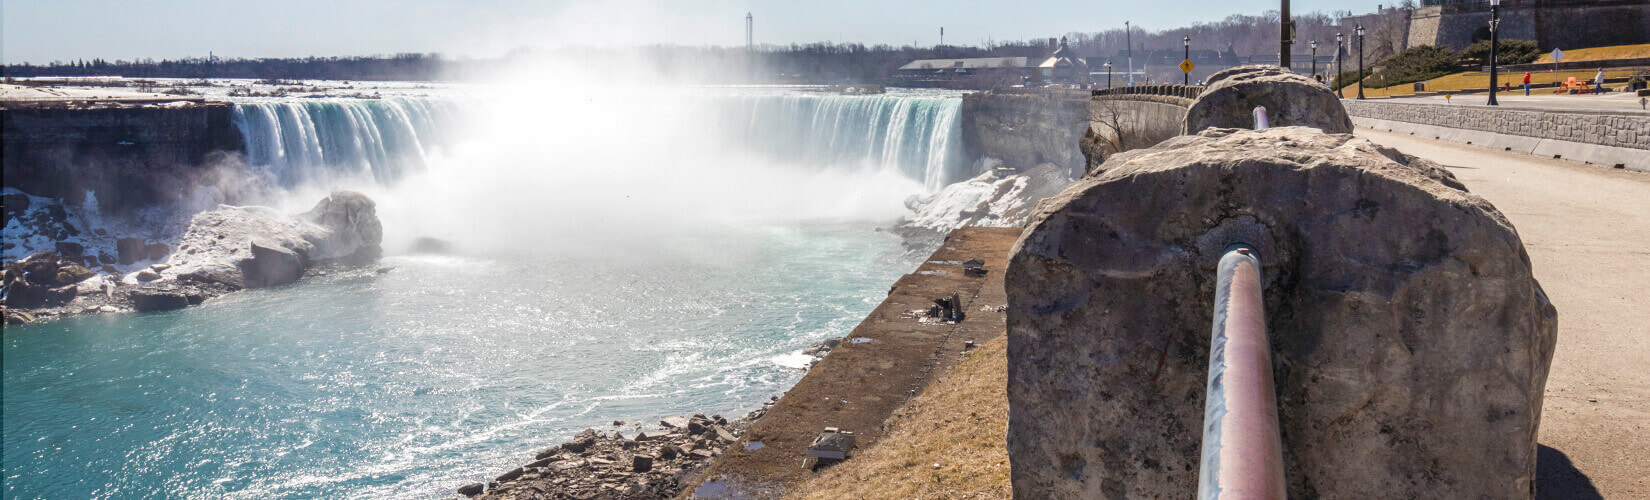 Where to Go Hiking in Niagara Falls: 7 Trails to Check Out in the City :: I've Been Bit! Travel Blog